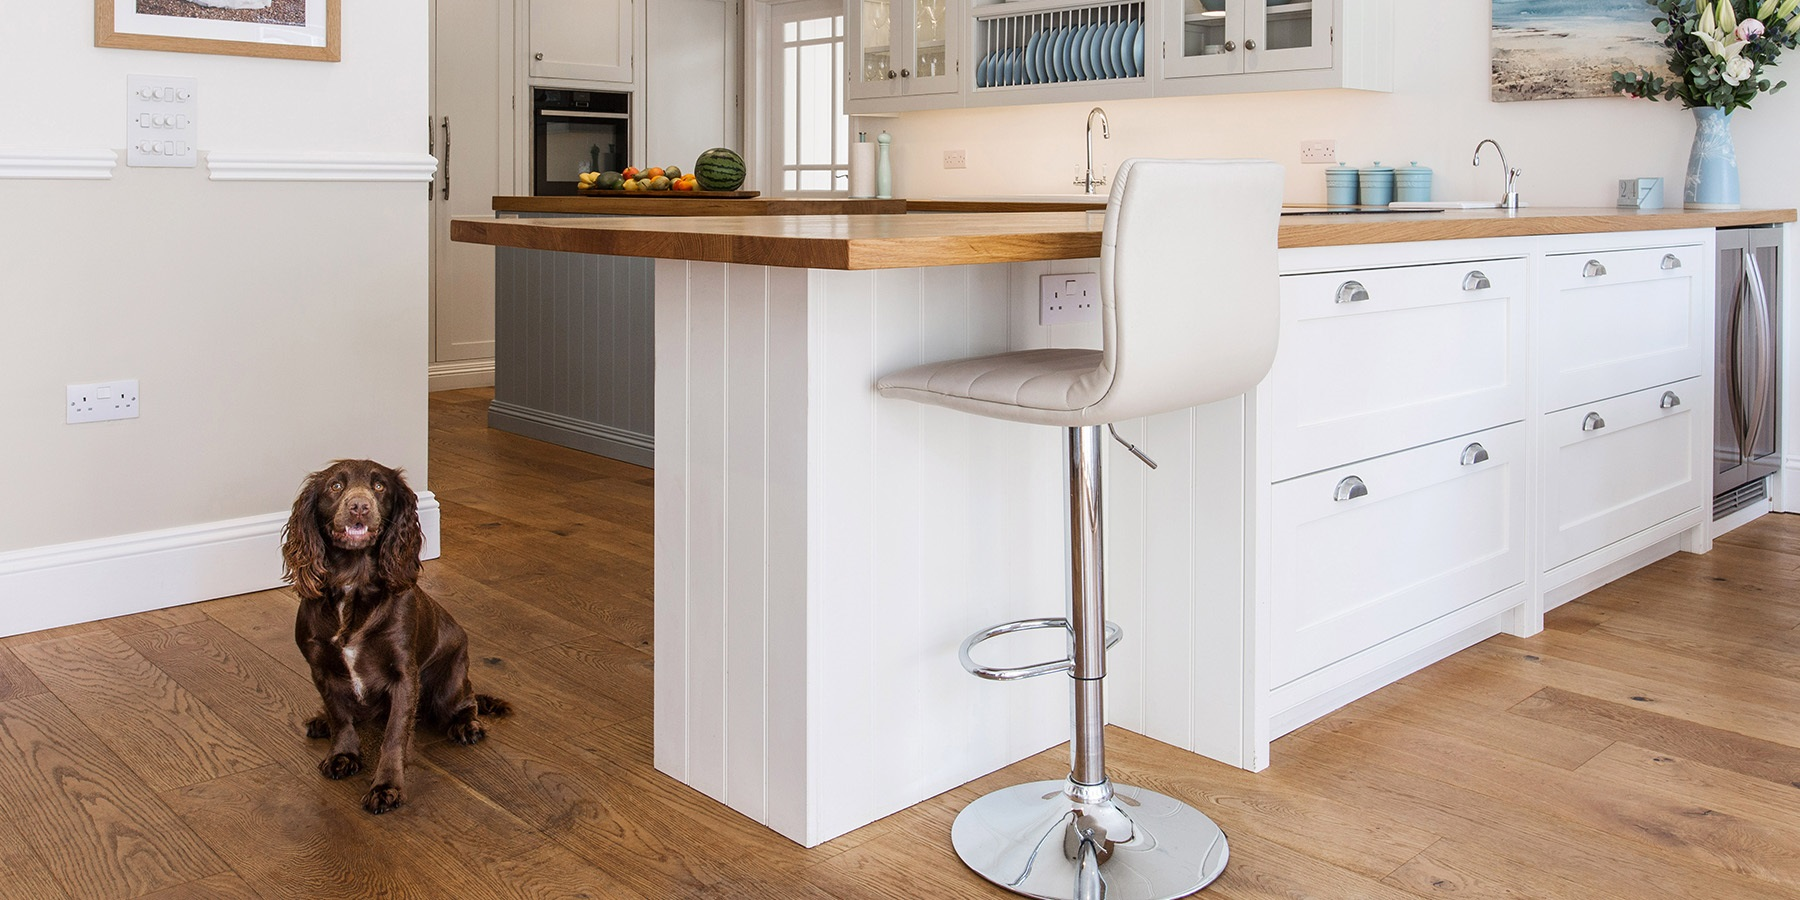 Bespoke White Shaker Kitchen - Burlanes handmade Wellsdown kitchen with breakfast bar and wooden worktops.